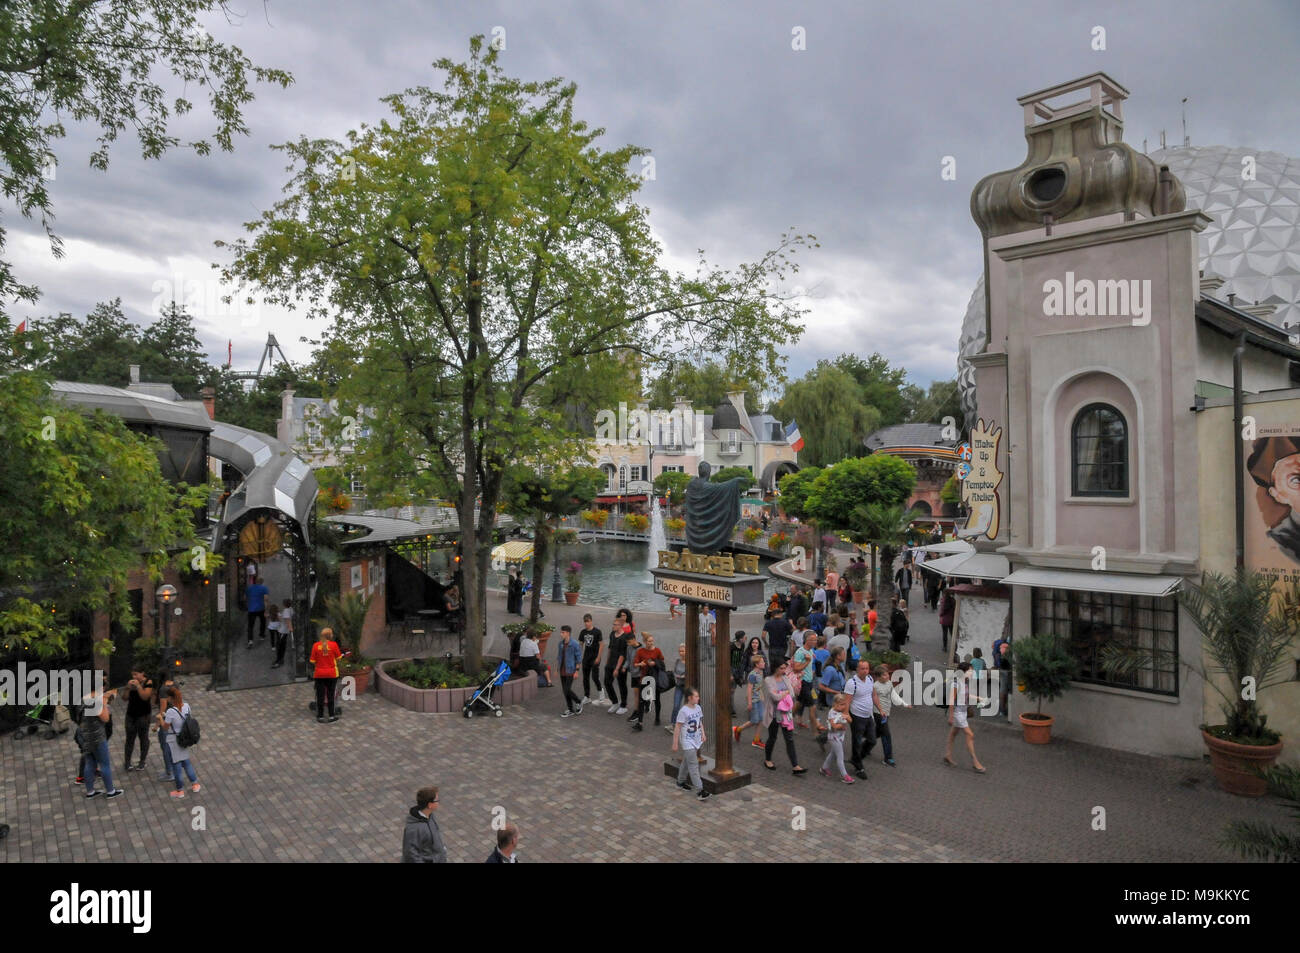 Europa-Park is the largest theme park in Germany. is located at Rust between Freiburg and Strasbourg, France. - Stock Image